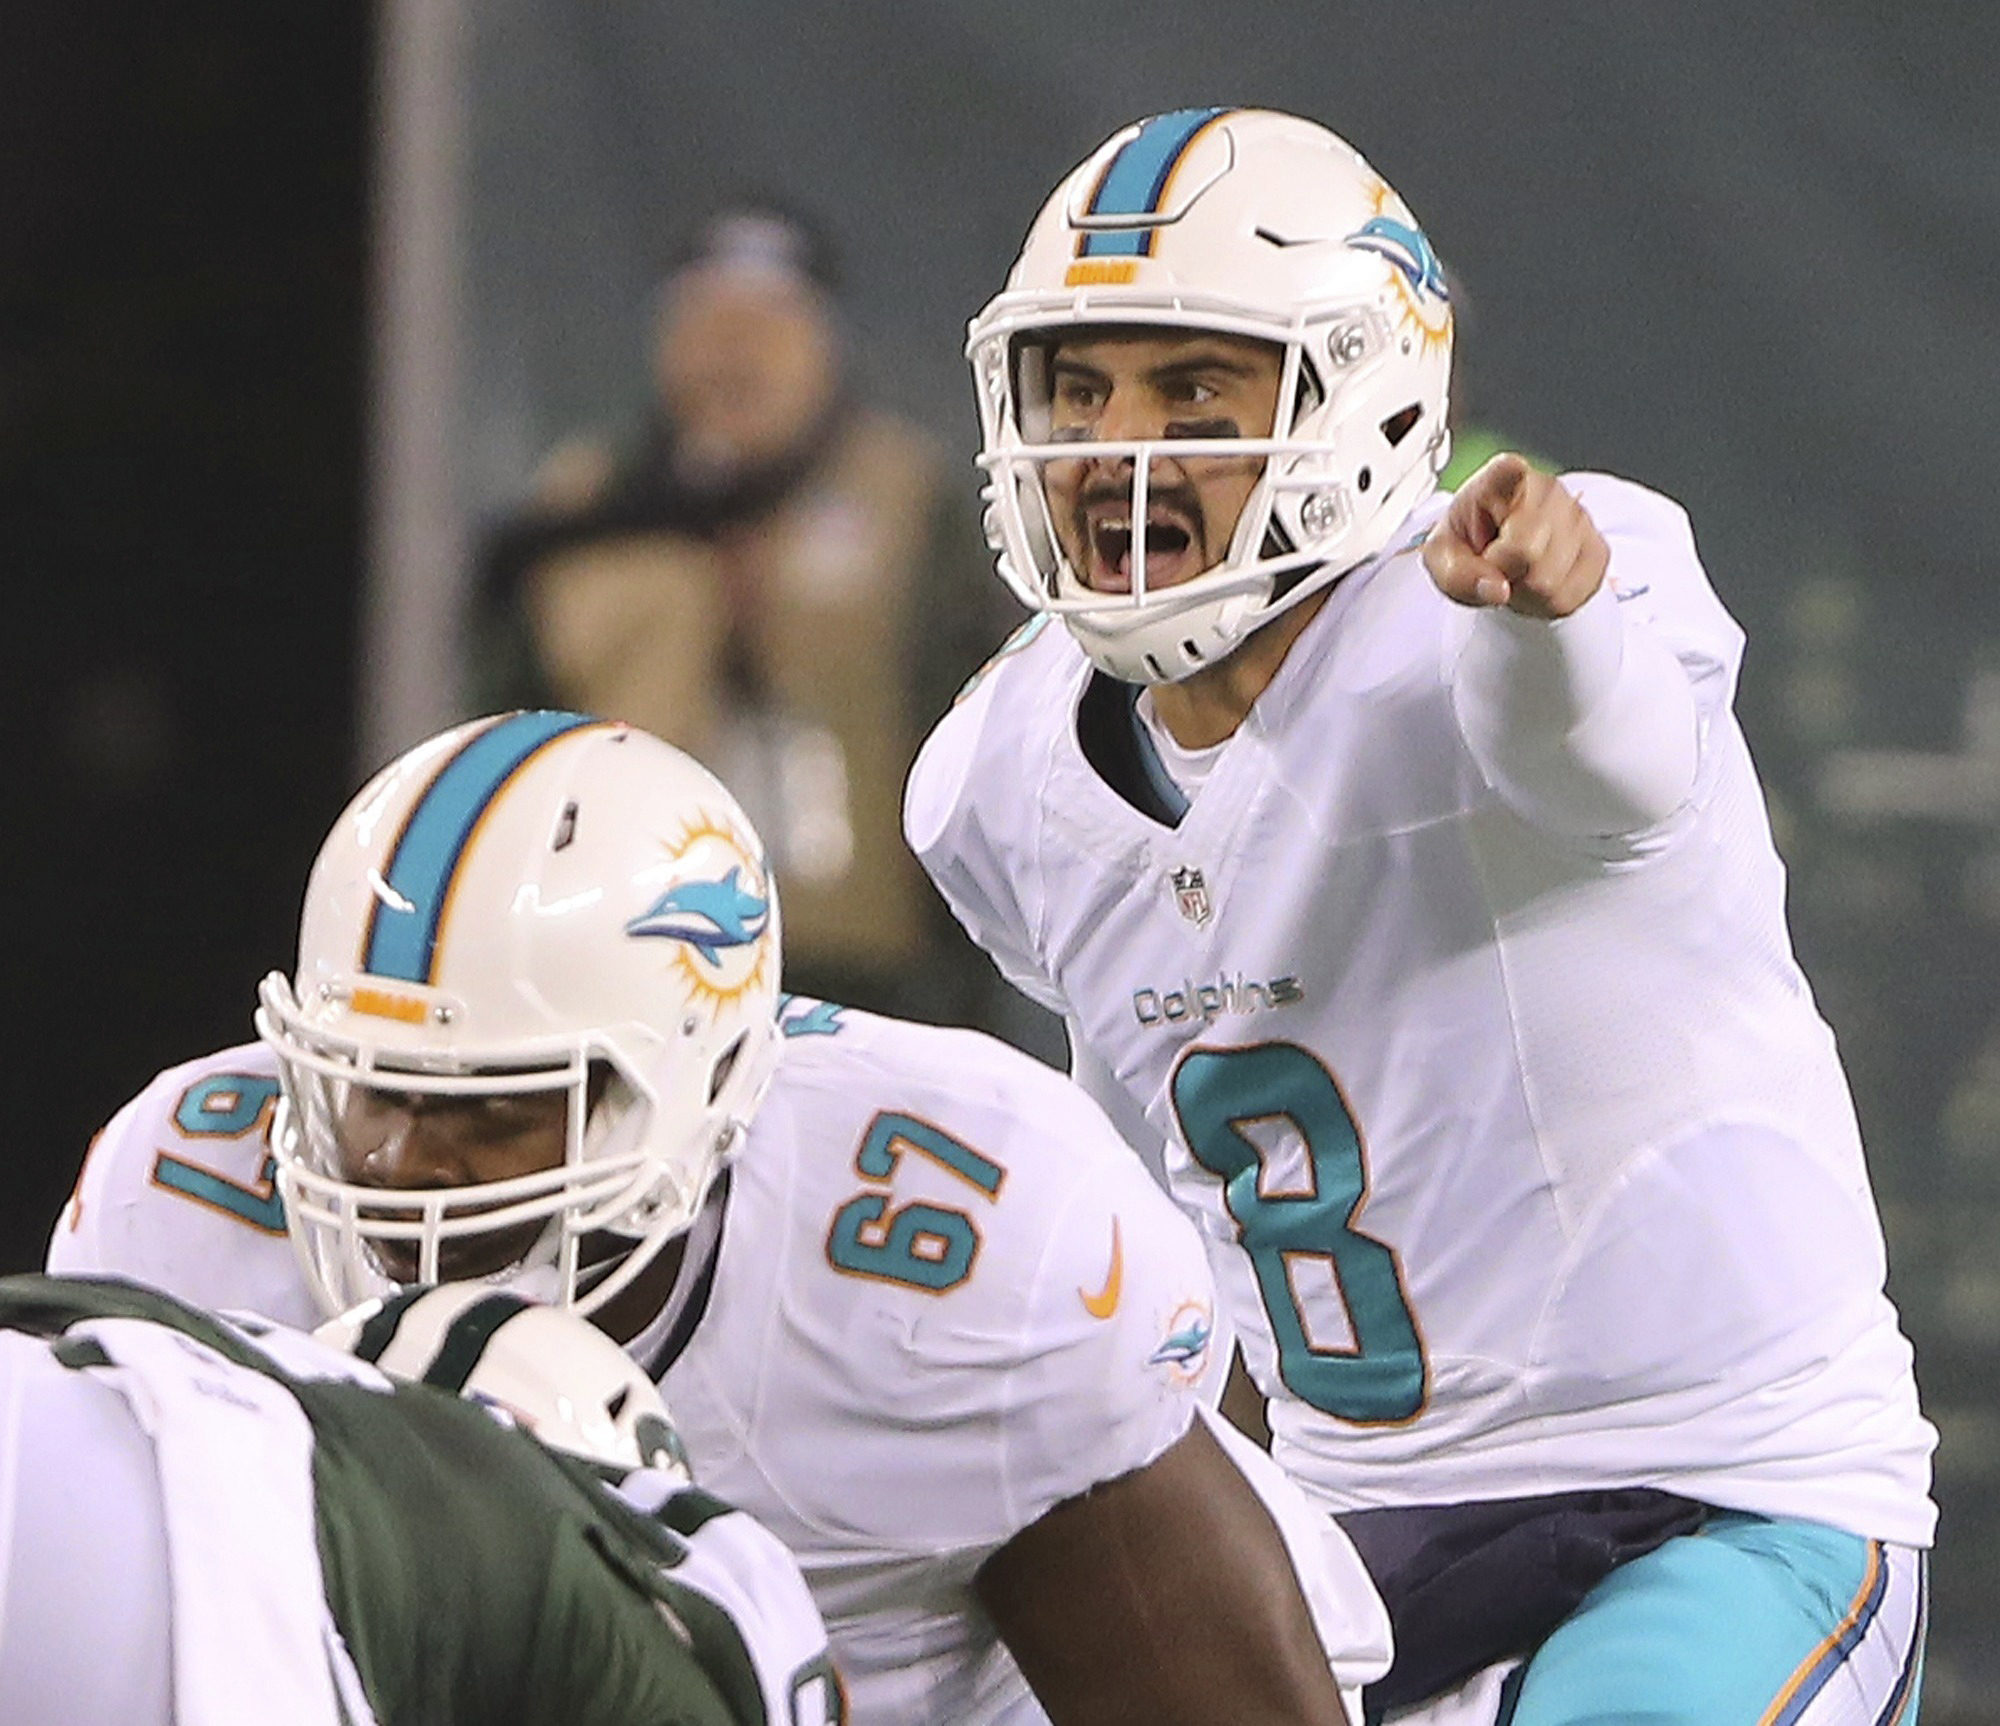 Miami Dolphins quarterback Matt Moore (8) shouts as he waits for the snap in the first half of an NFL football game against the New York Jets, Saturday, Dec. 17, 2016, in East Rutherford, N.J. (Charles Trainor  /Miami Herald via AP)